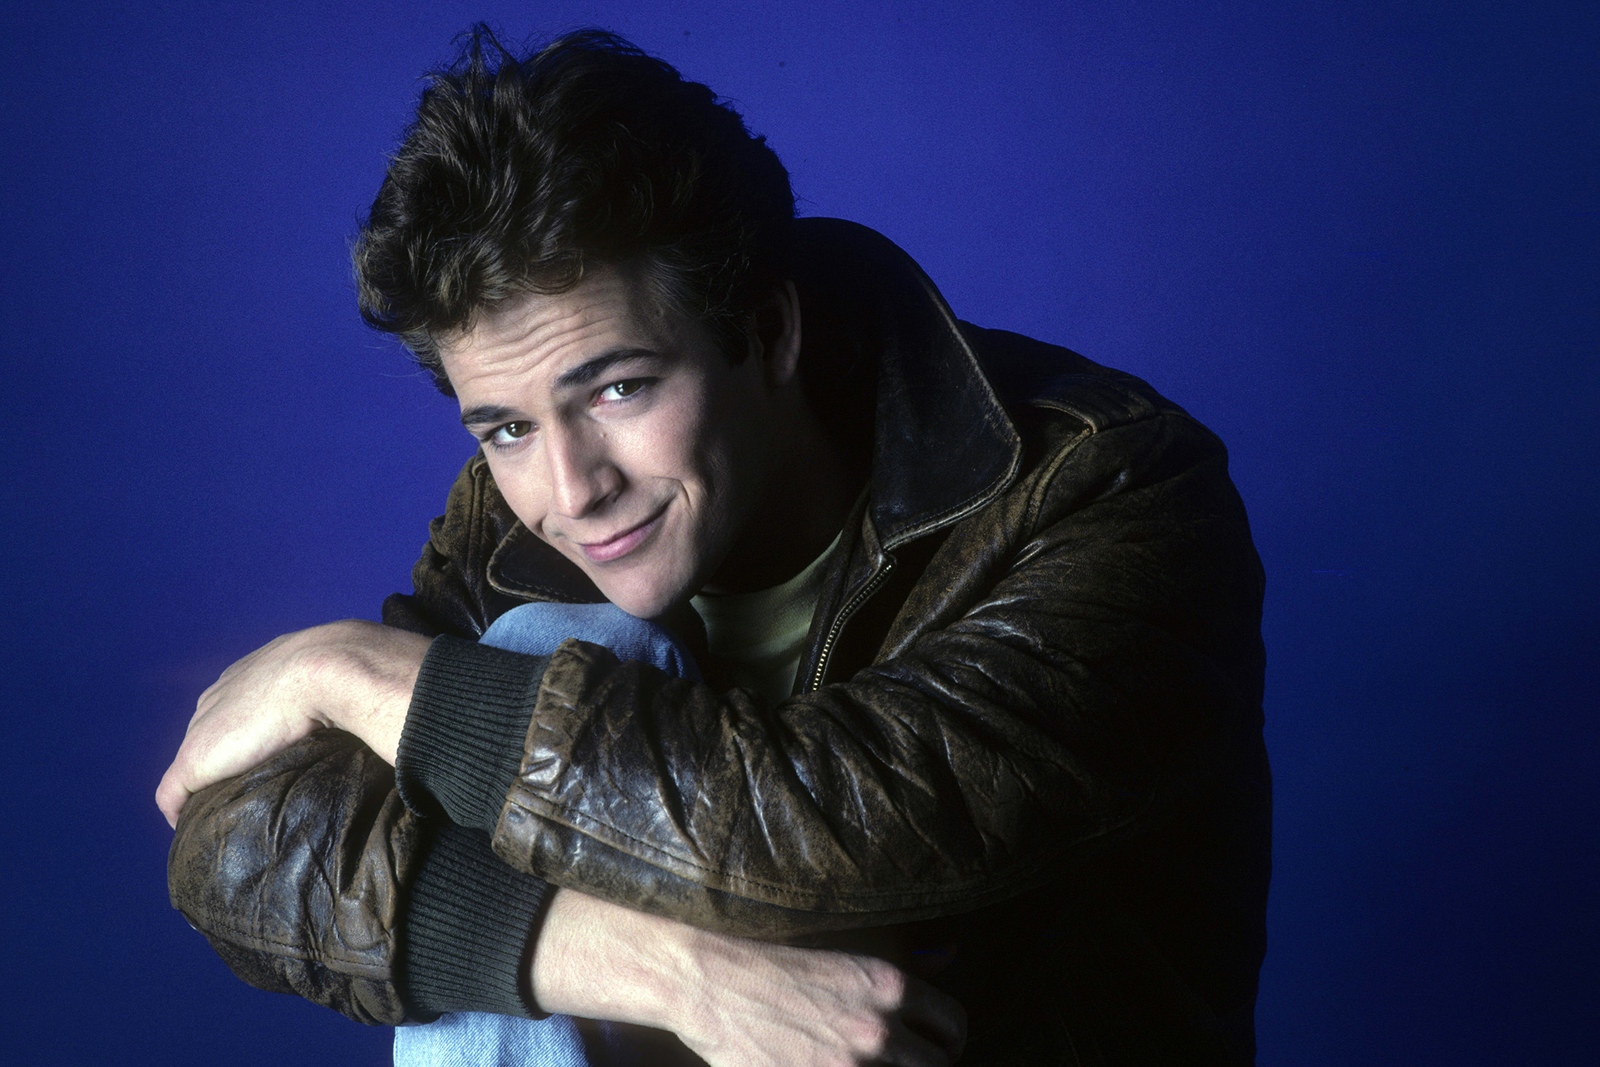 Luke Perry on March 30, 1987.